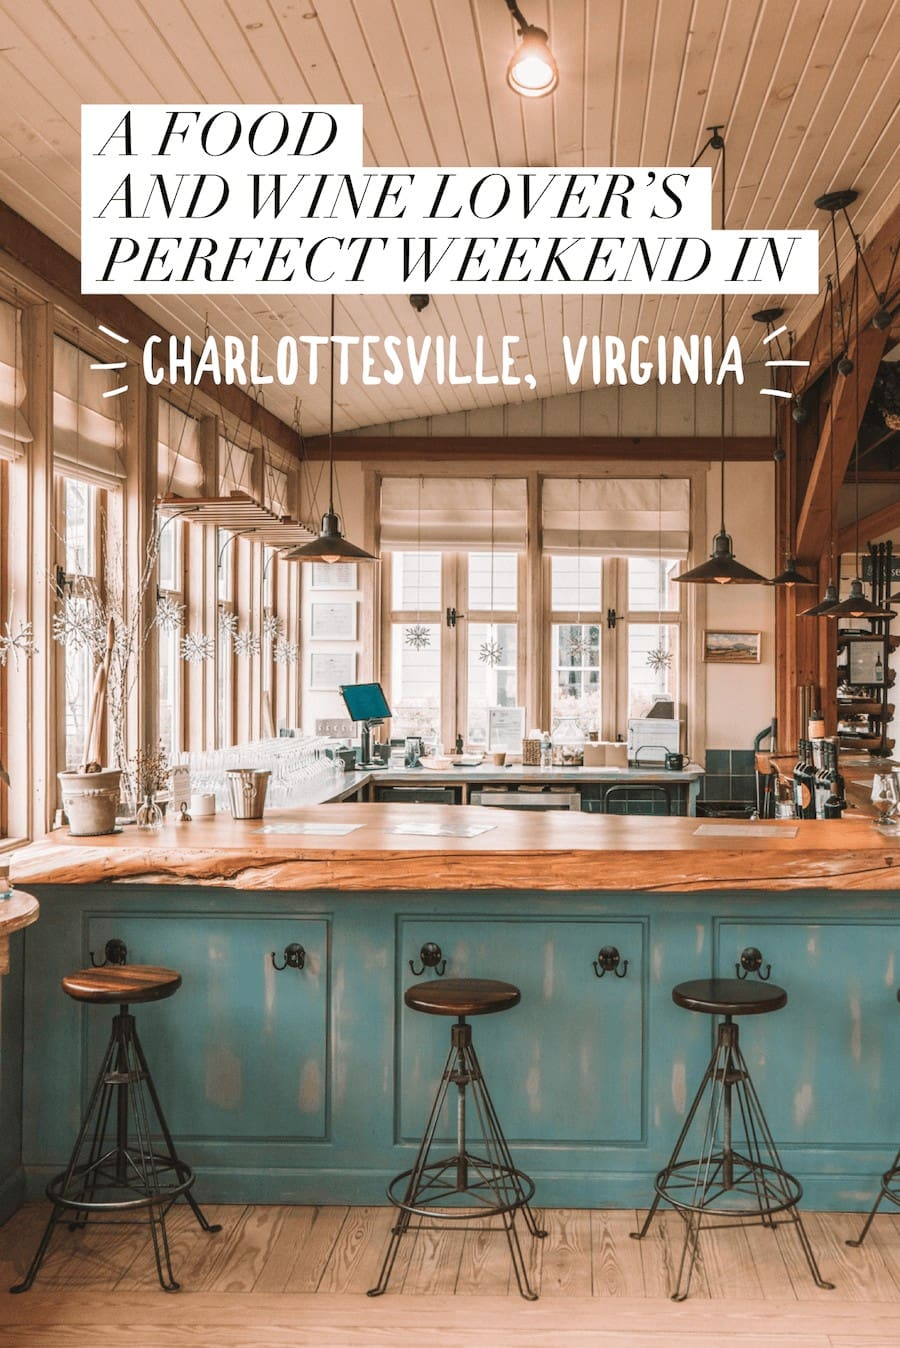 A Perfect Weekend in Charlottesville Guide for Food and Wine Lovers